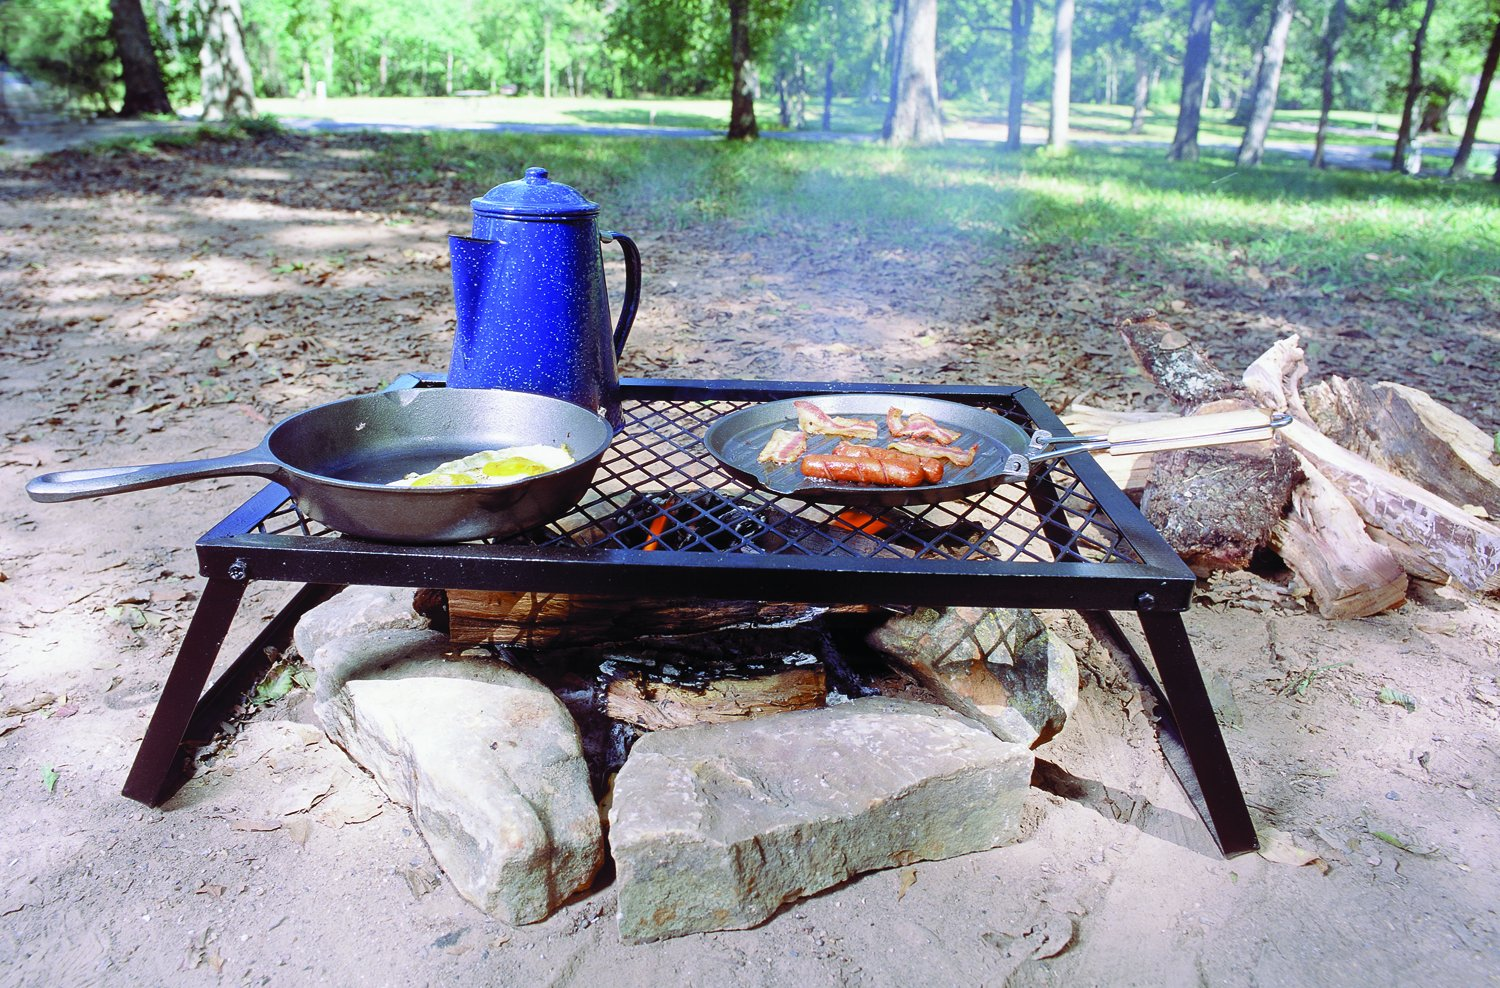 Heavy Duty Over Fire Camp Grill made our list of Campfire Cooking Equipment You Can't Live Without with the best tools, accessories, utensils and cookware for your camp cooking creations!